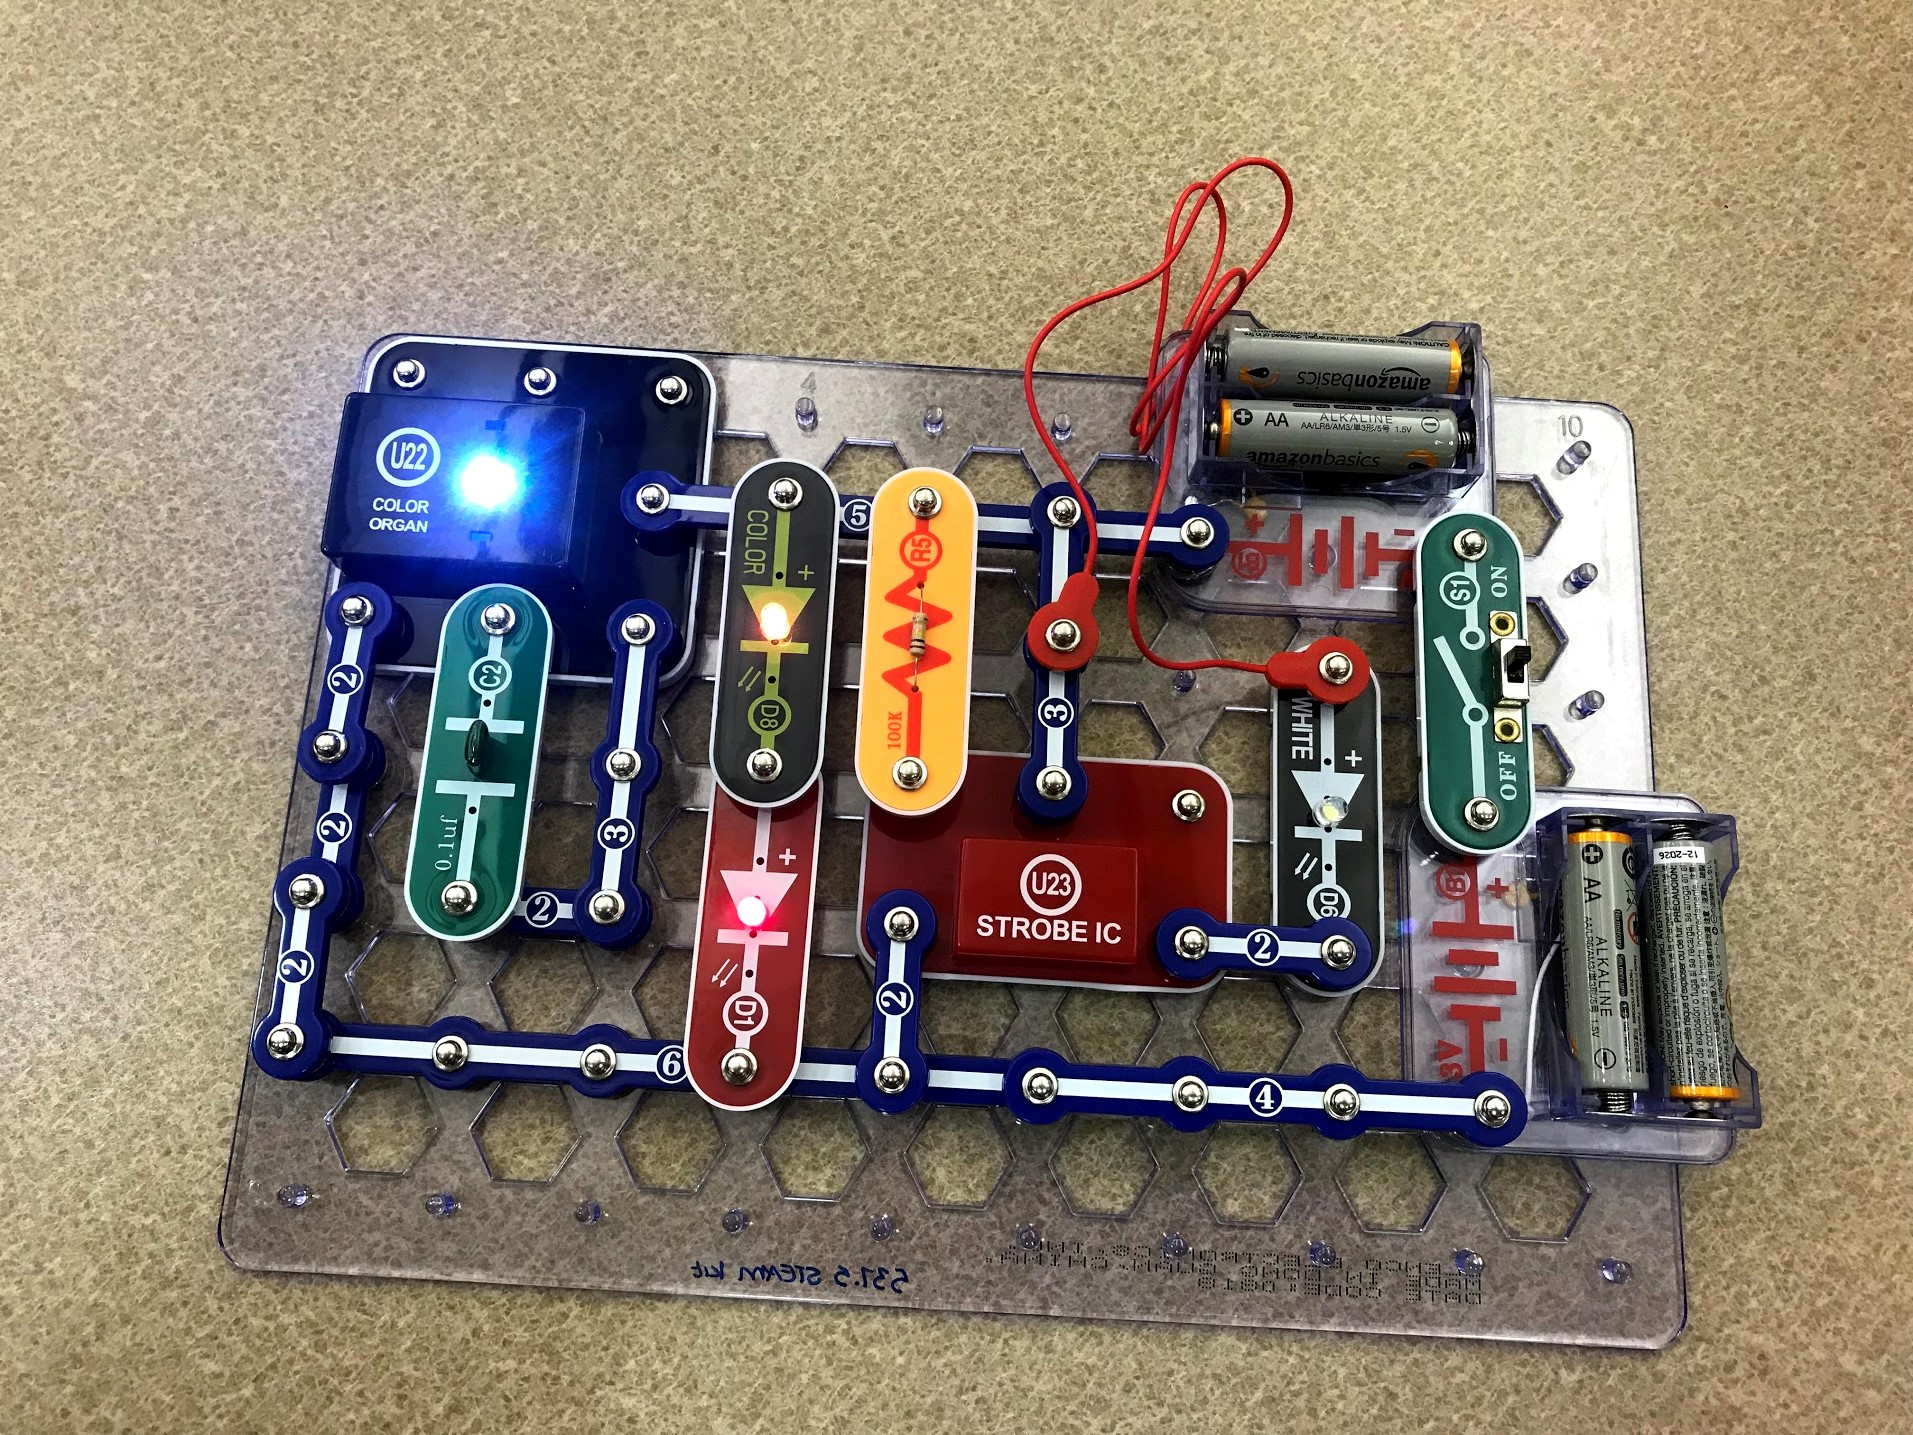 A constructed snap circuit. Several conductive parts are connected so that multiple LEDs are lit up.